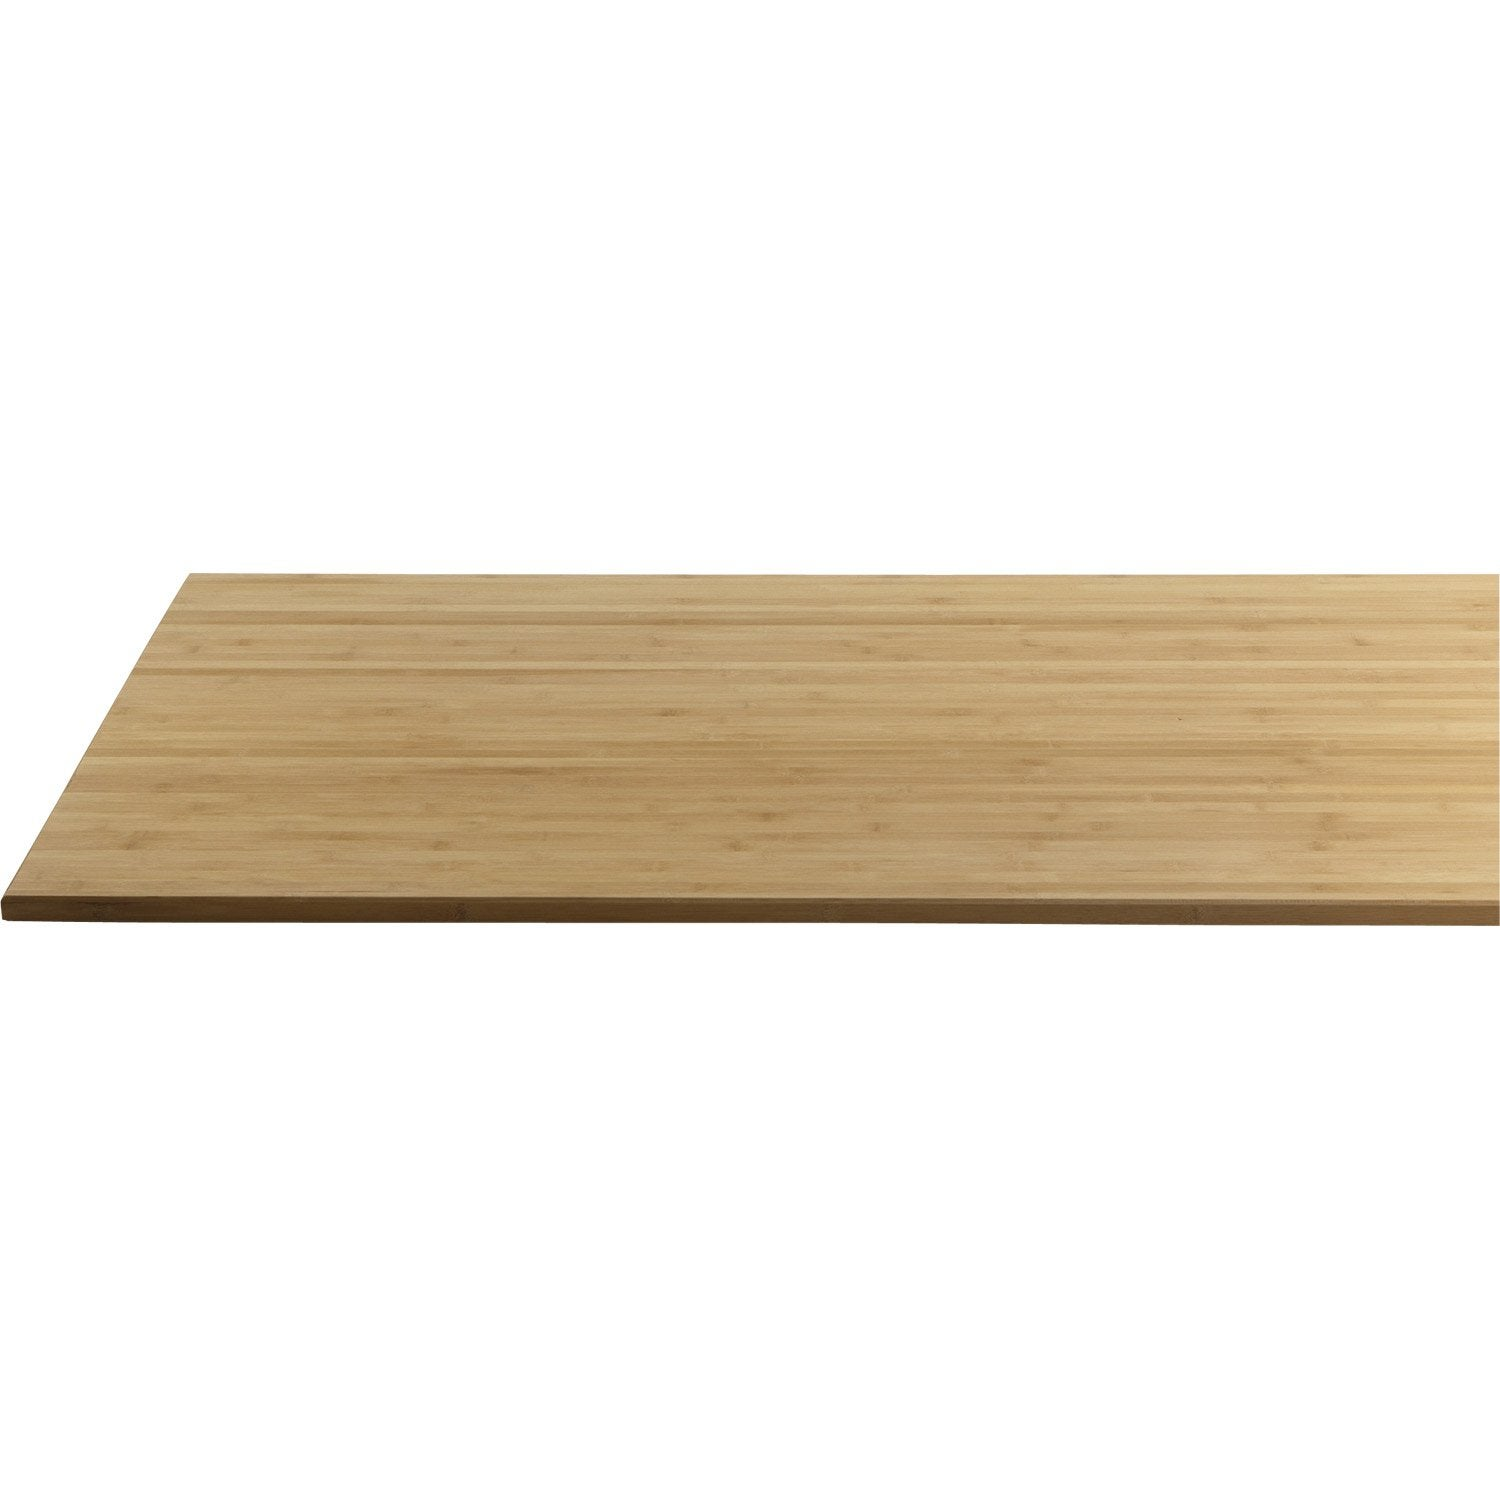 Plateau de table bambou x cm x mm - Table rabattable leroy merlin ...